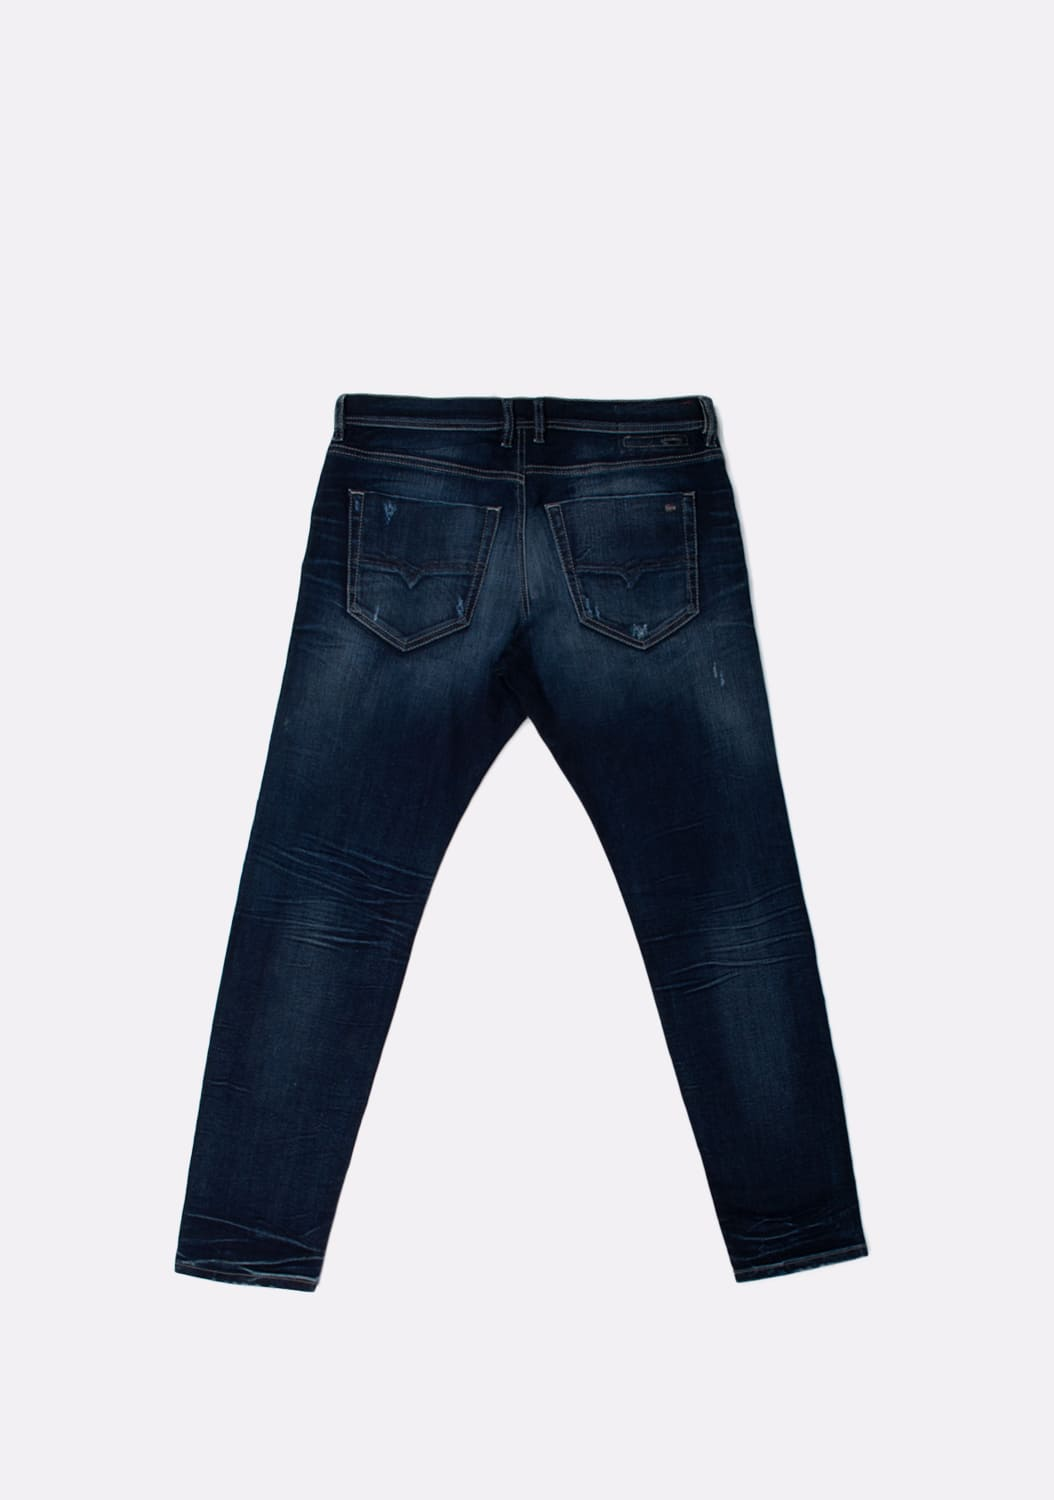 Diesel-Tepphar-0844T-Stretch-Slim-Carrot-dzinsai-dydis 34-30 (5)